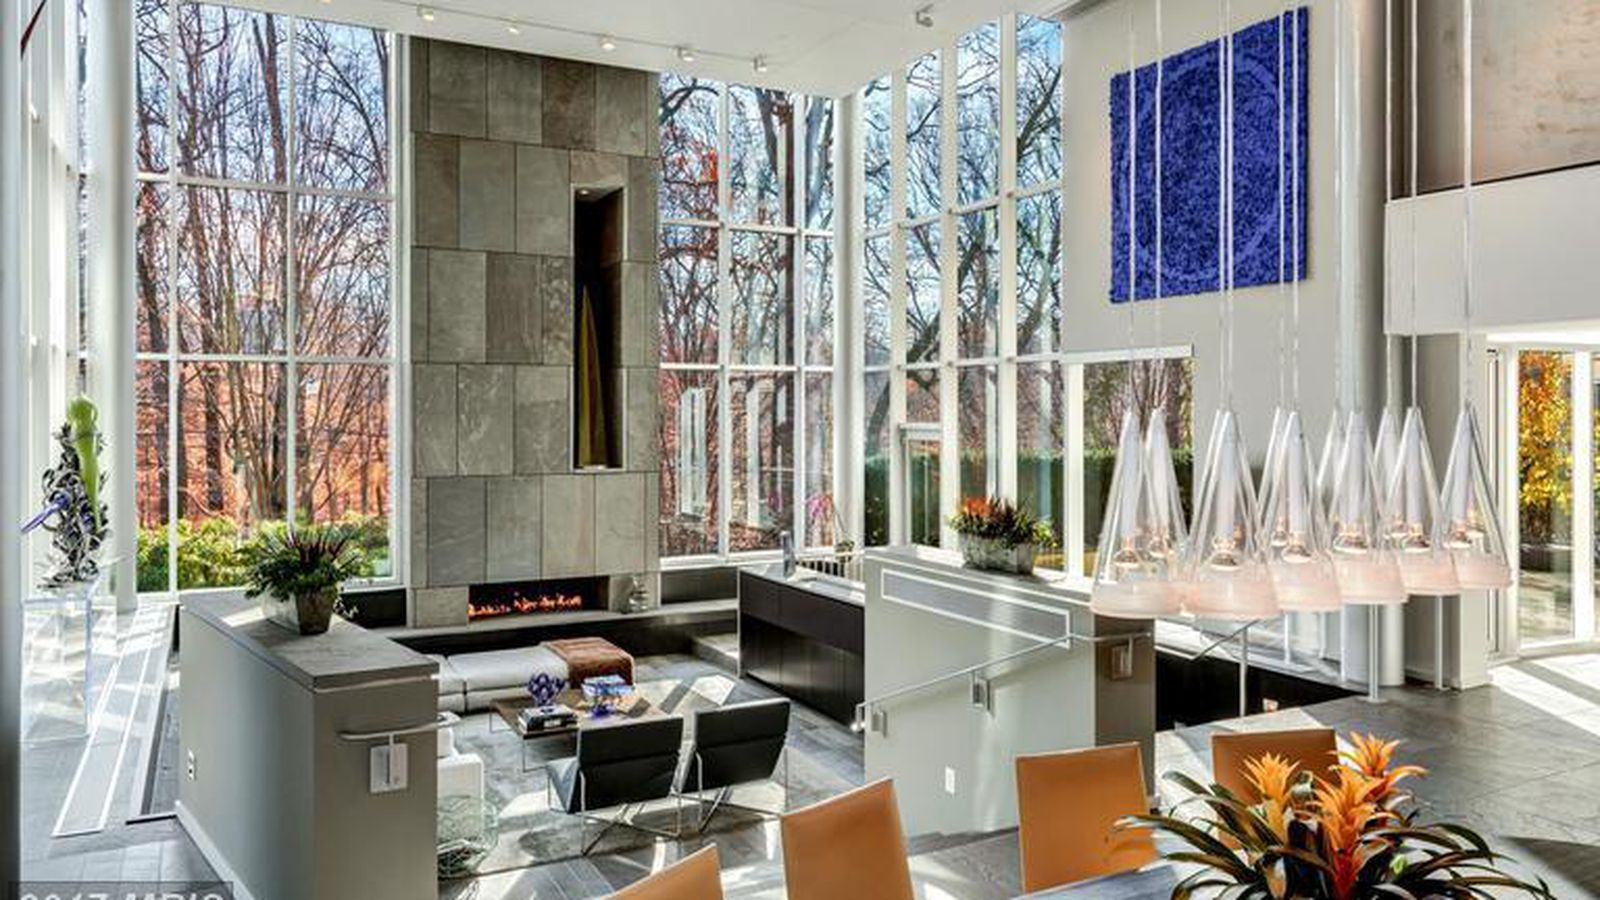 D c 39 s 25 most expensive homes for sale mapped curbed dc for Most expensive home for sale